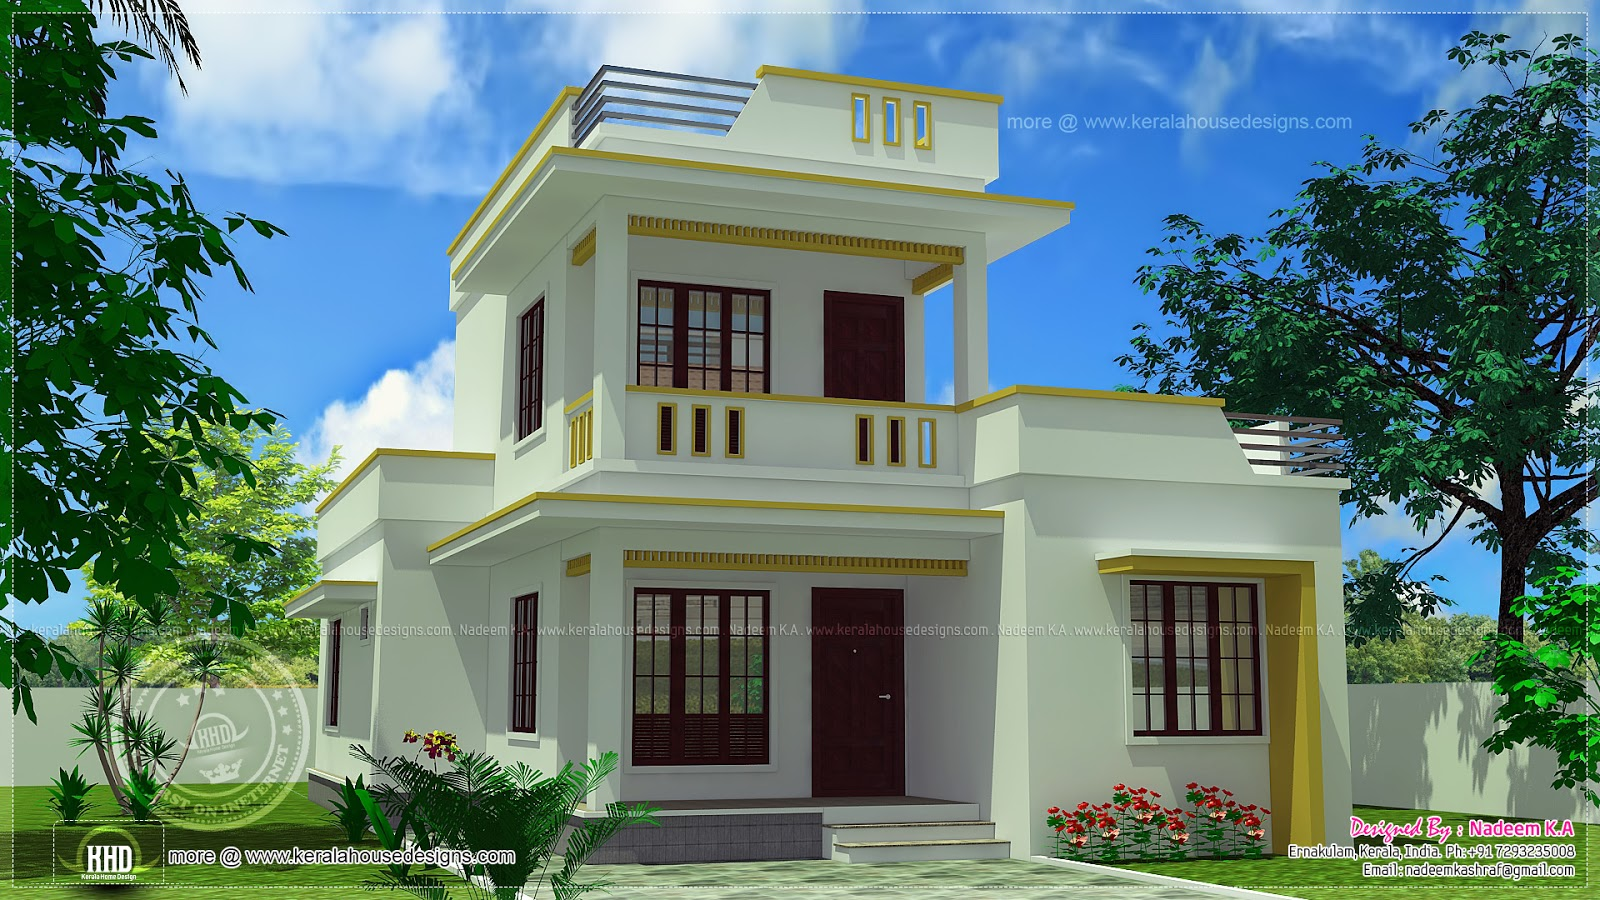 August 2013 kerala home design and floor plans for Indian small house designs photos